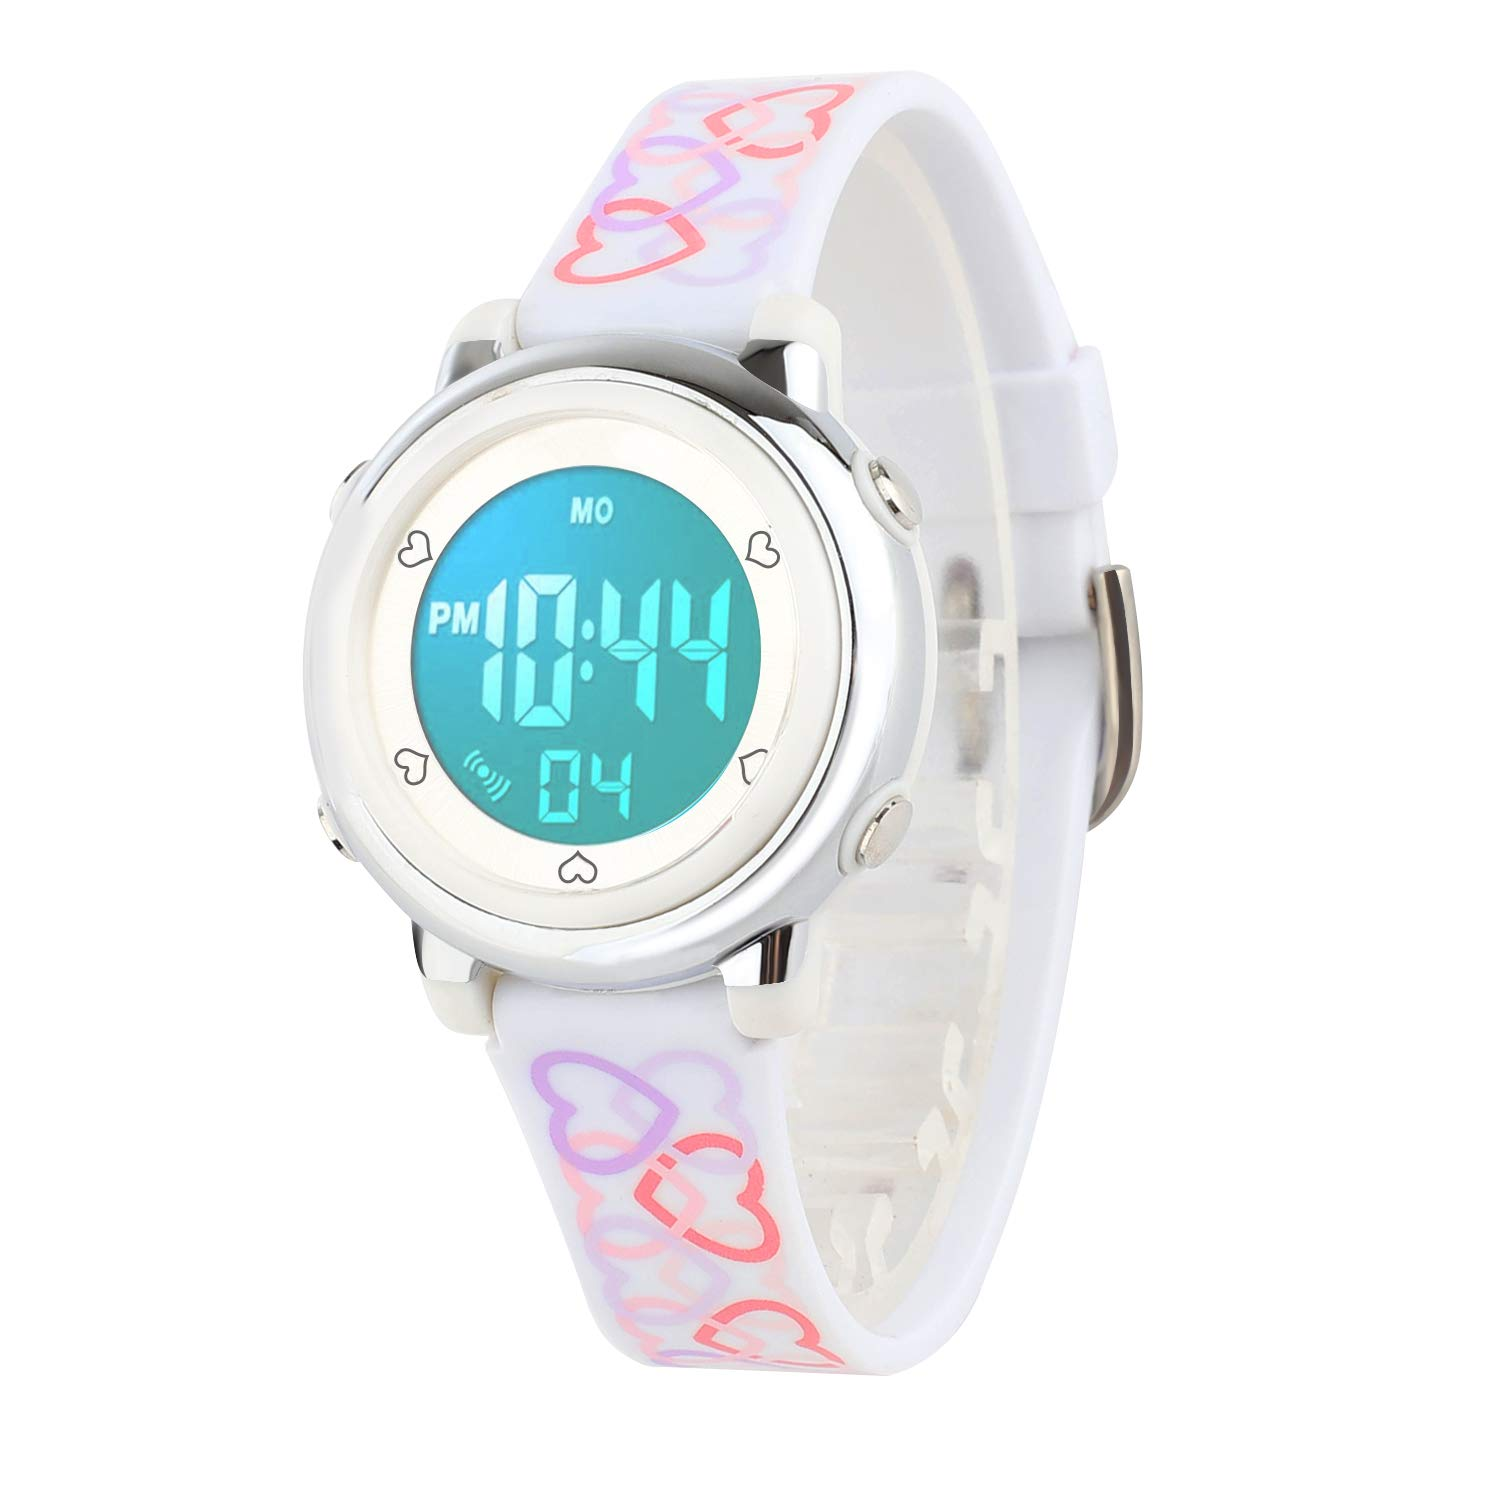 Kids Digital Watch, Boys Sports Waterproof Led Watches Kids Watches with Alarm Wrist Watches for Boy Girls Children White by Wdnba